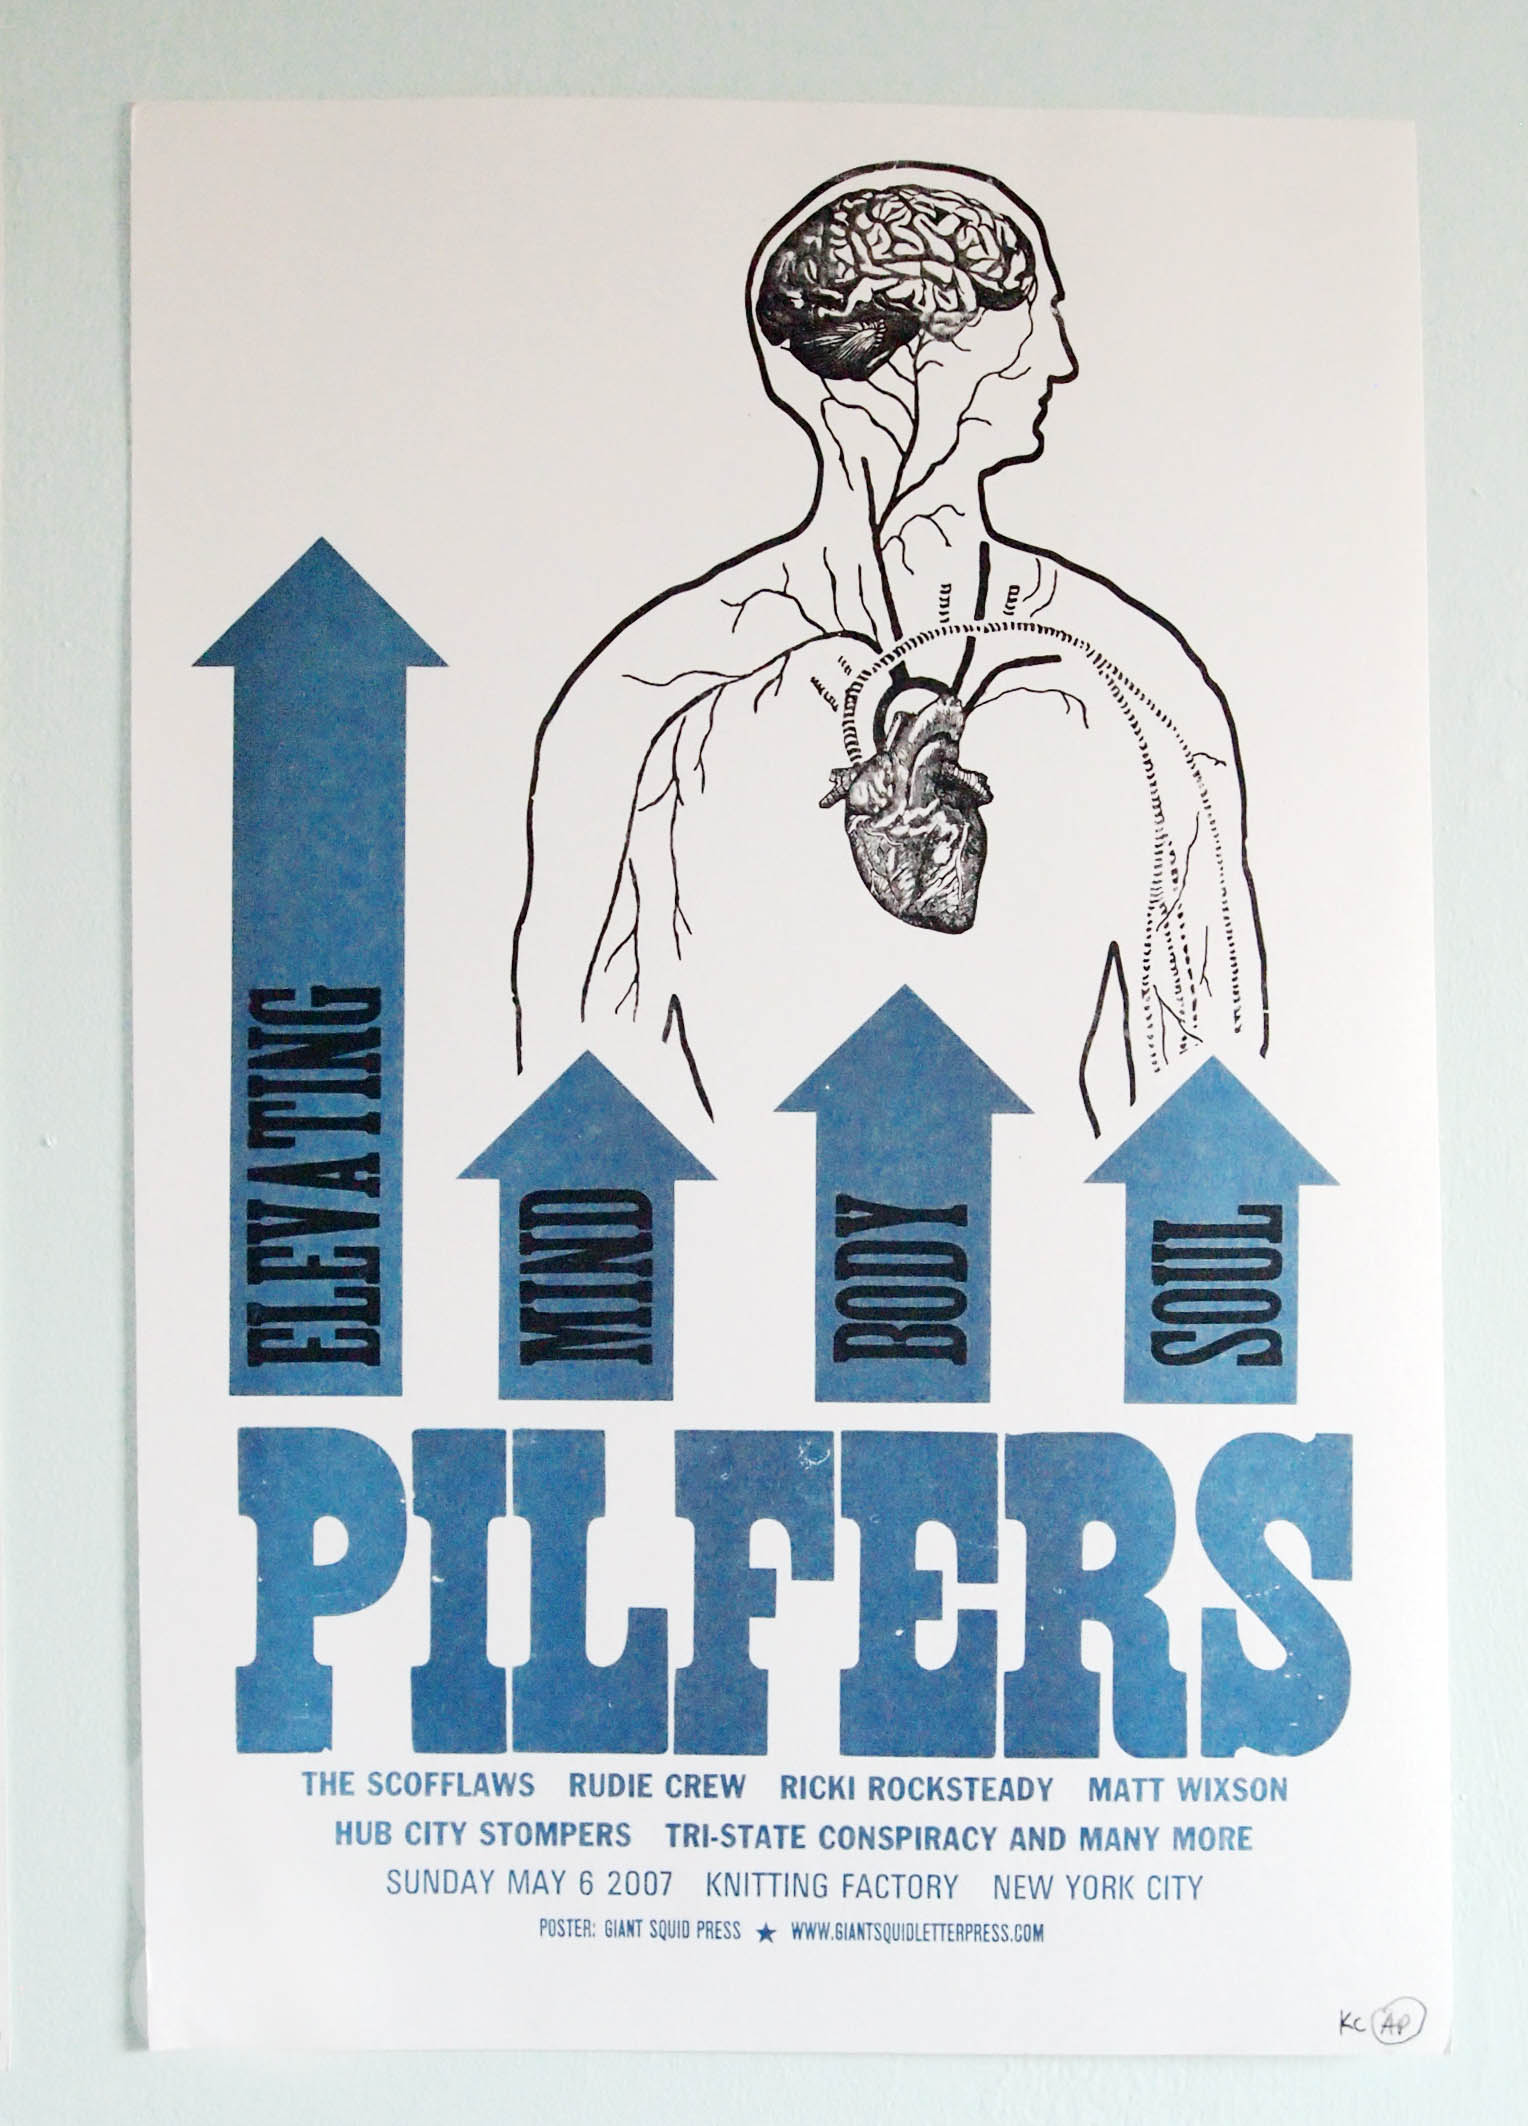 Pilfers NYC Ska letterpress concert poster at the Knitting Factory NYC